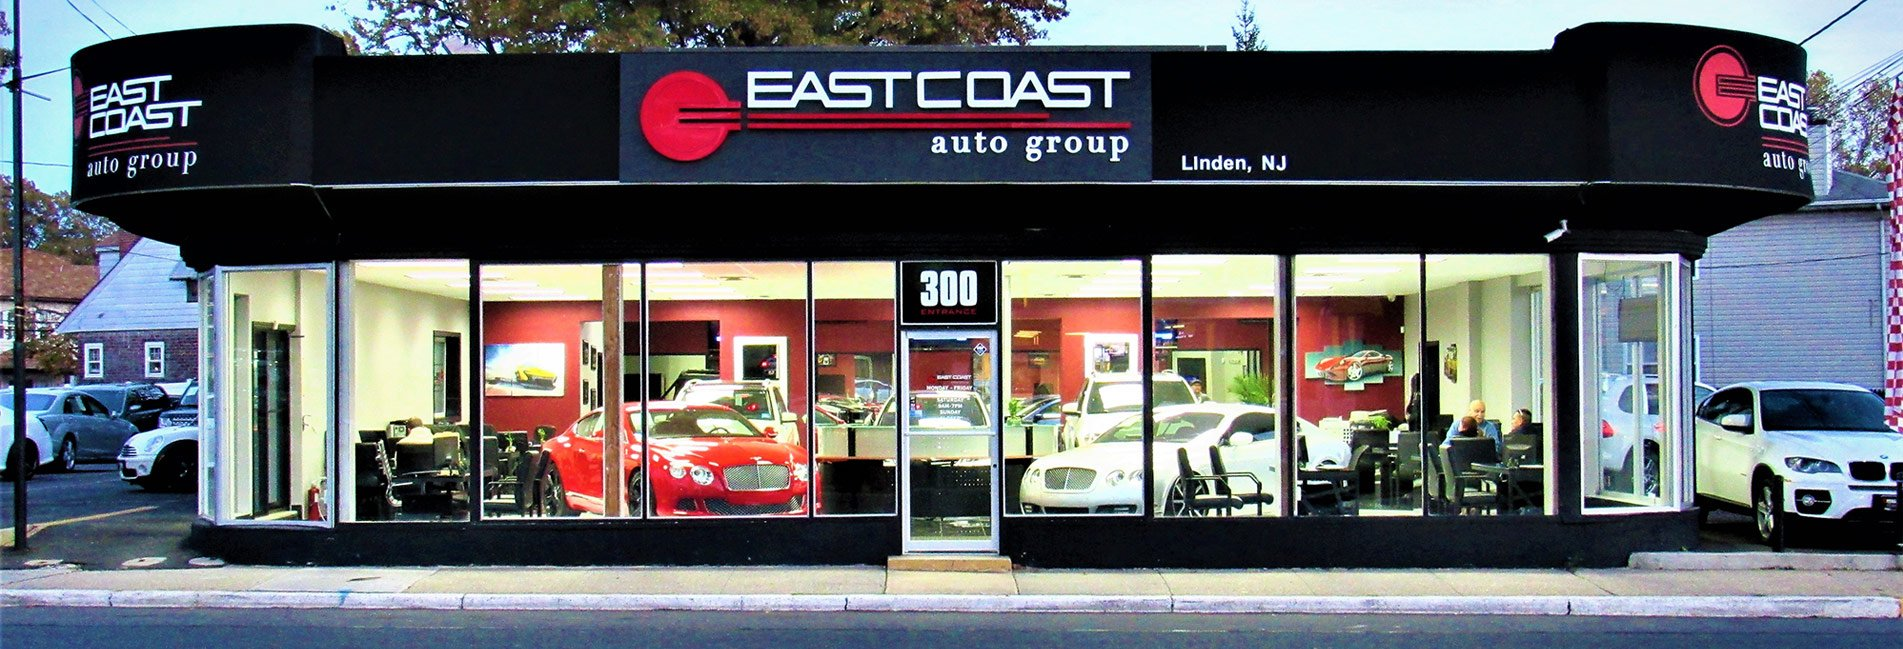 used car dealer in linden elizabeth westfield edison nj east coast auto group. Black Bedroom Furniture Sets. Home Design Ideas